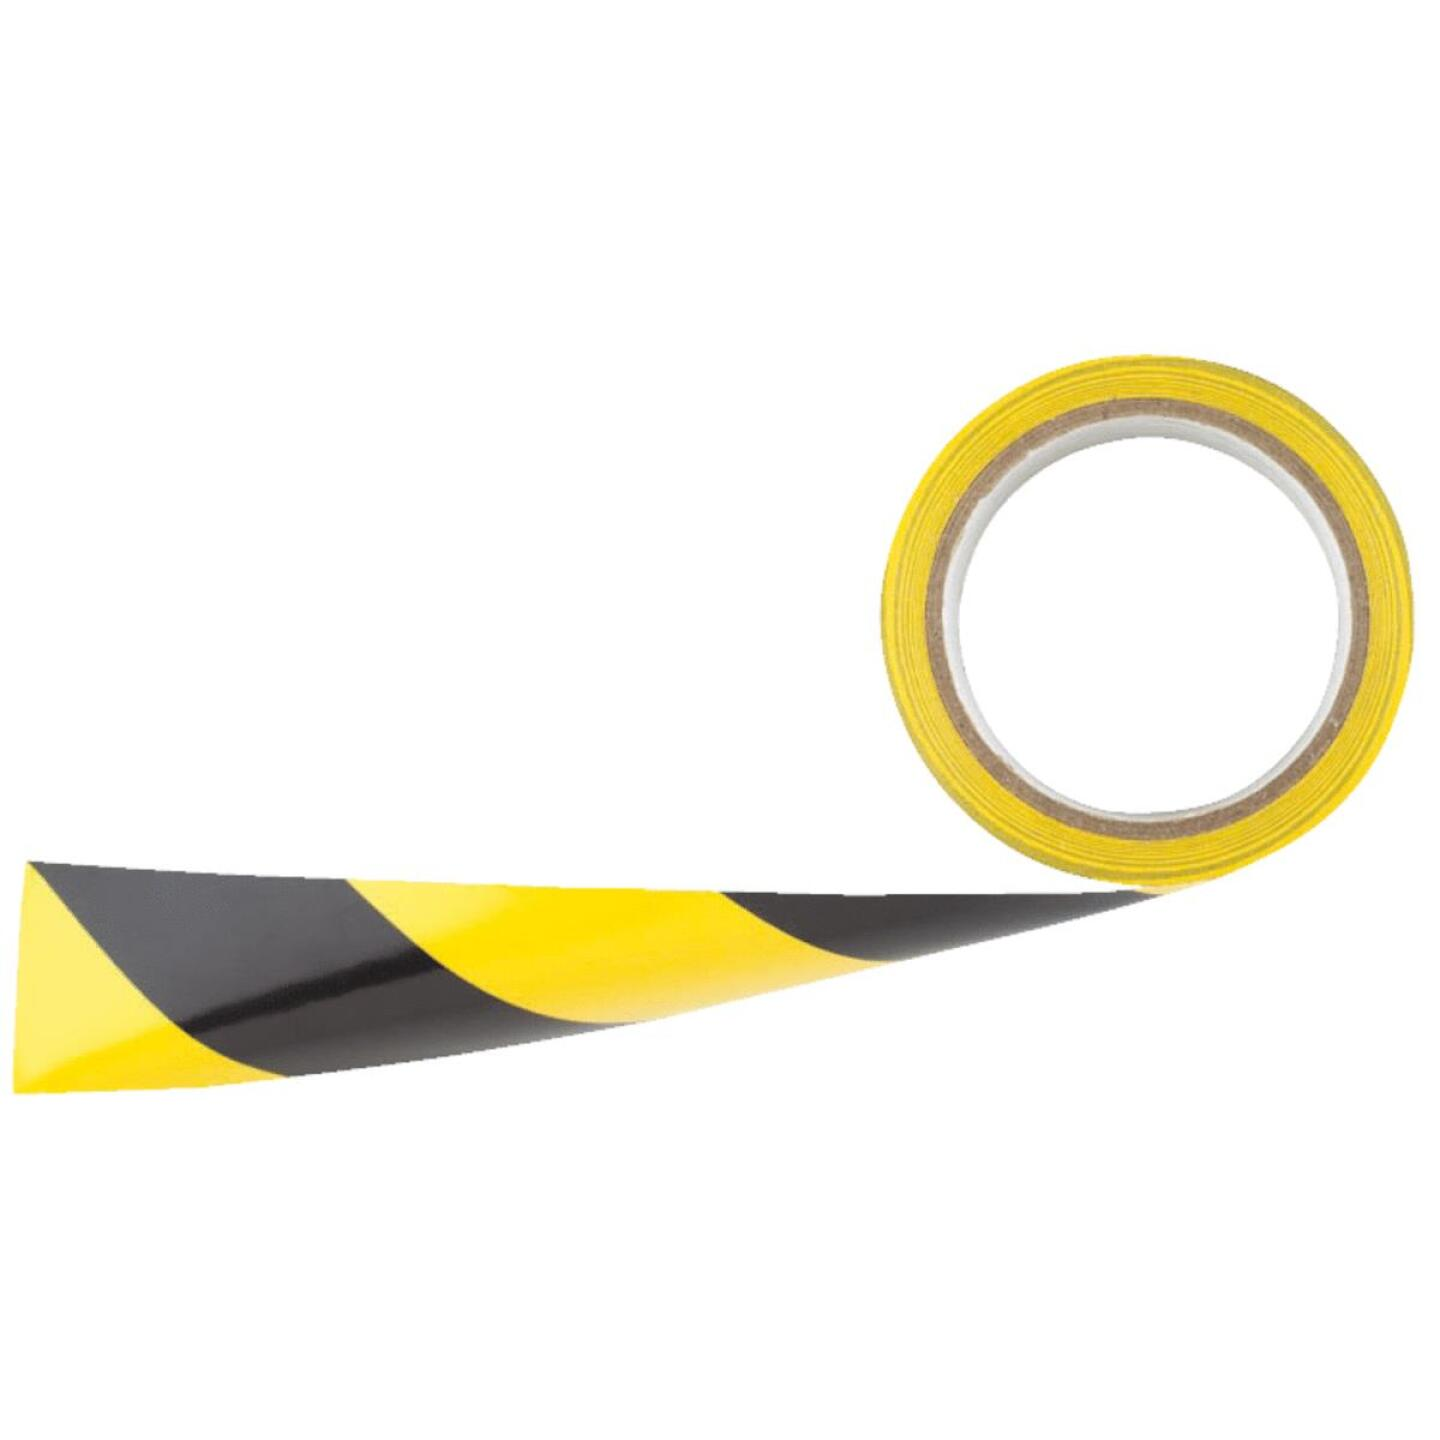 Irwin 2 In. W x 54 Ft. L Striped Floor Caution Tape Image 1